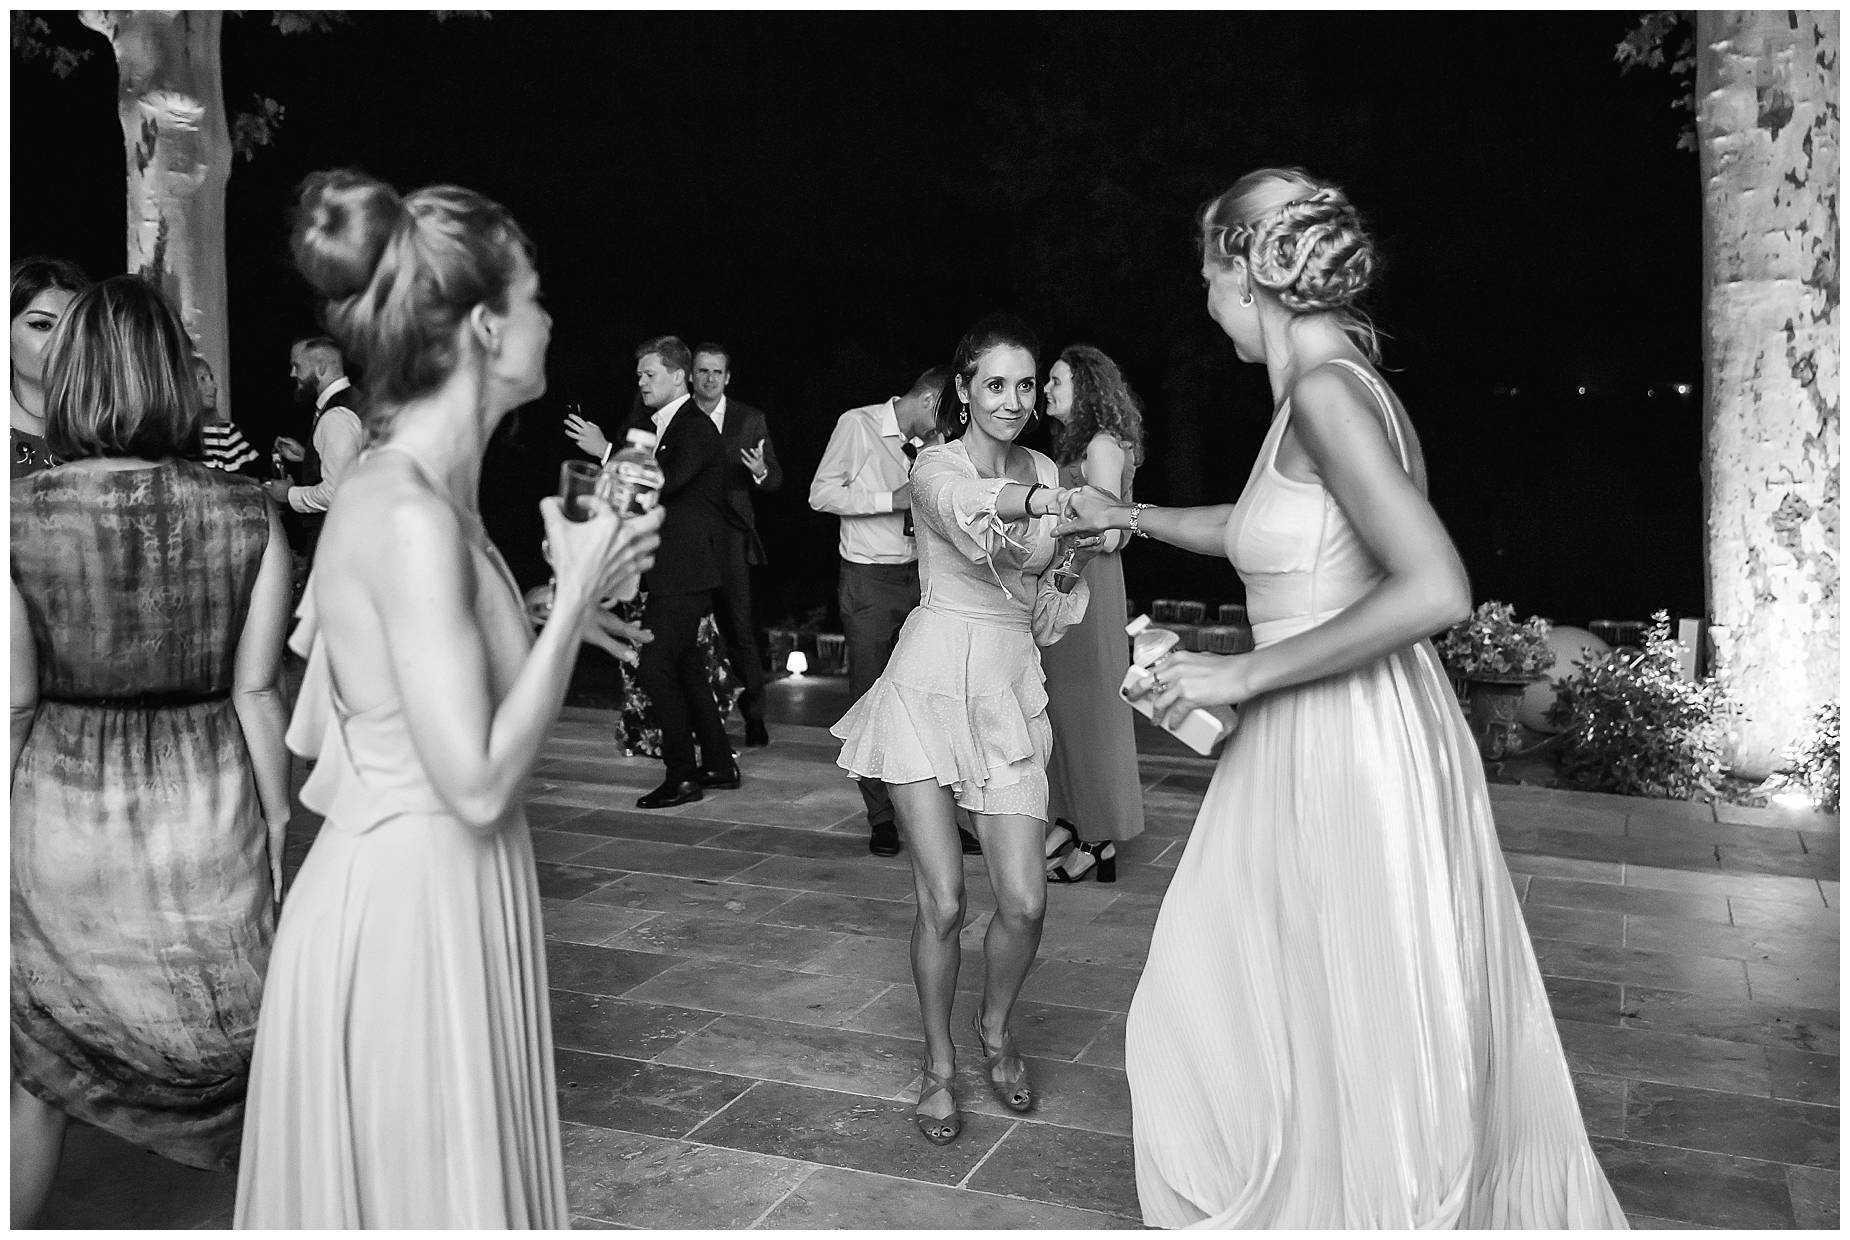 guests dance at Chateau de Malmont Wedding